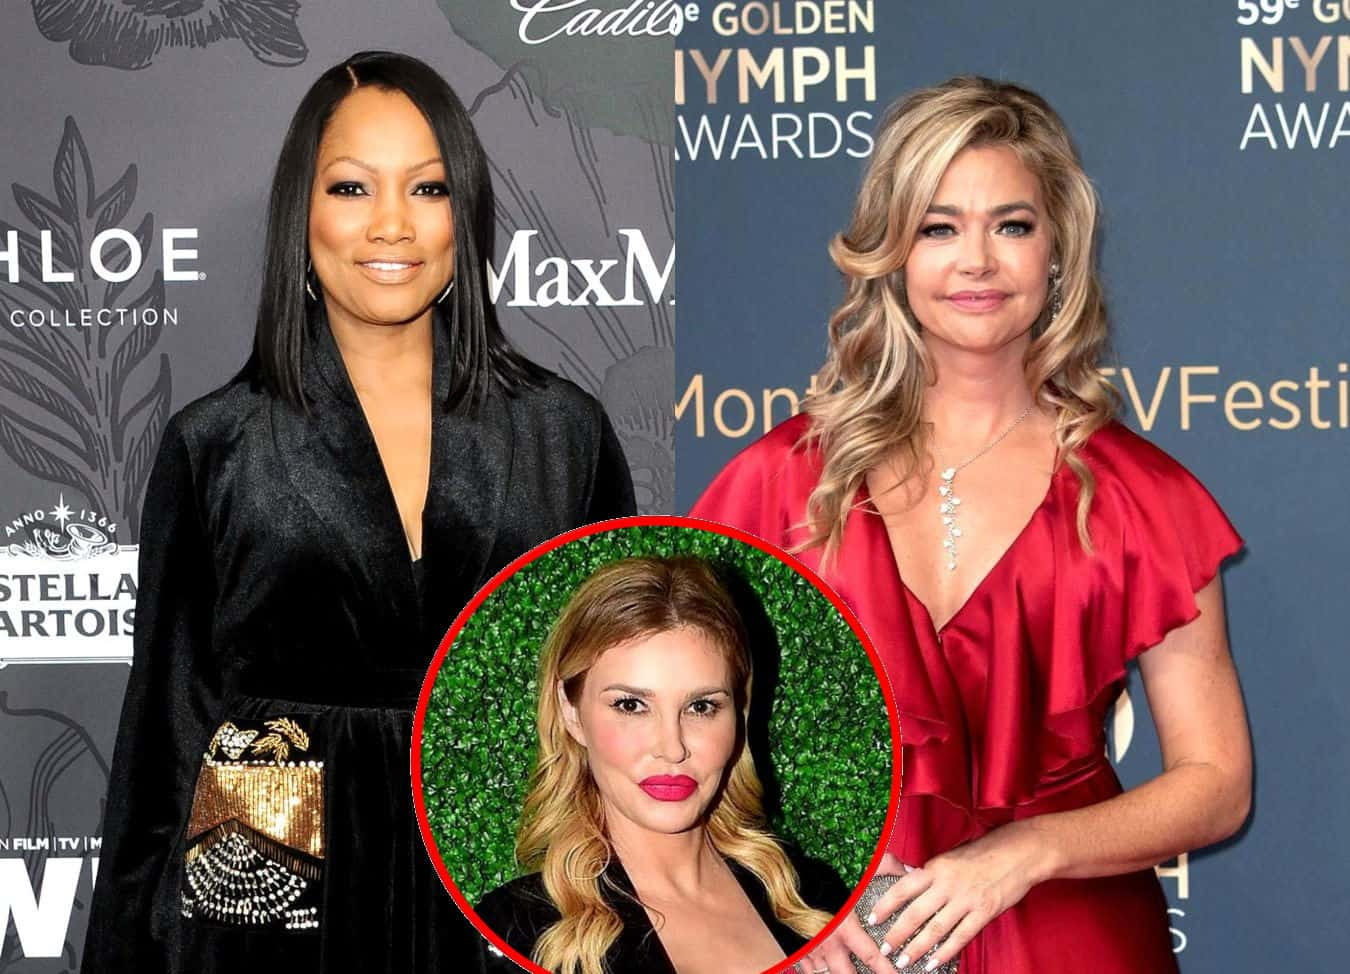 RHOBH's Garcelle Beauvais Shares How Denise Richards is Coping With Drama Involving Brandi, Plus She Reveals Hardest Part About Filming Show